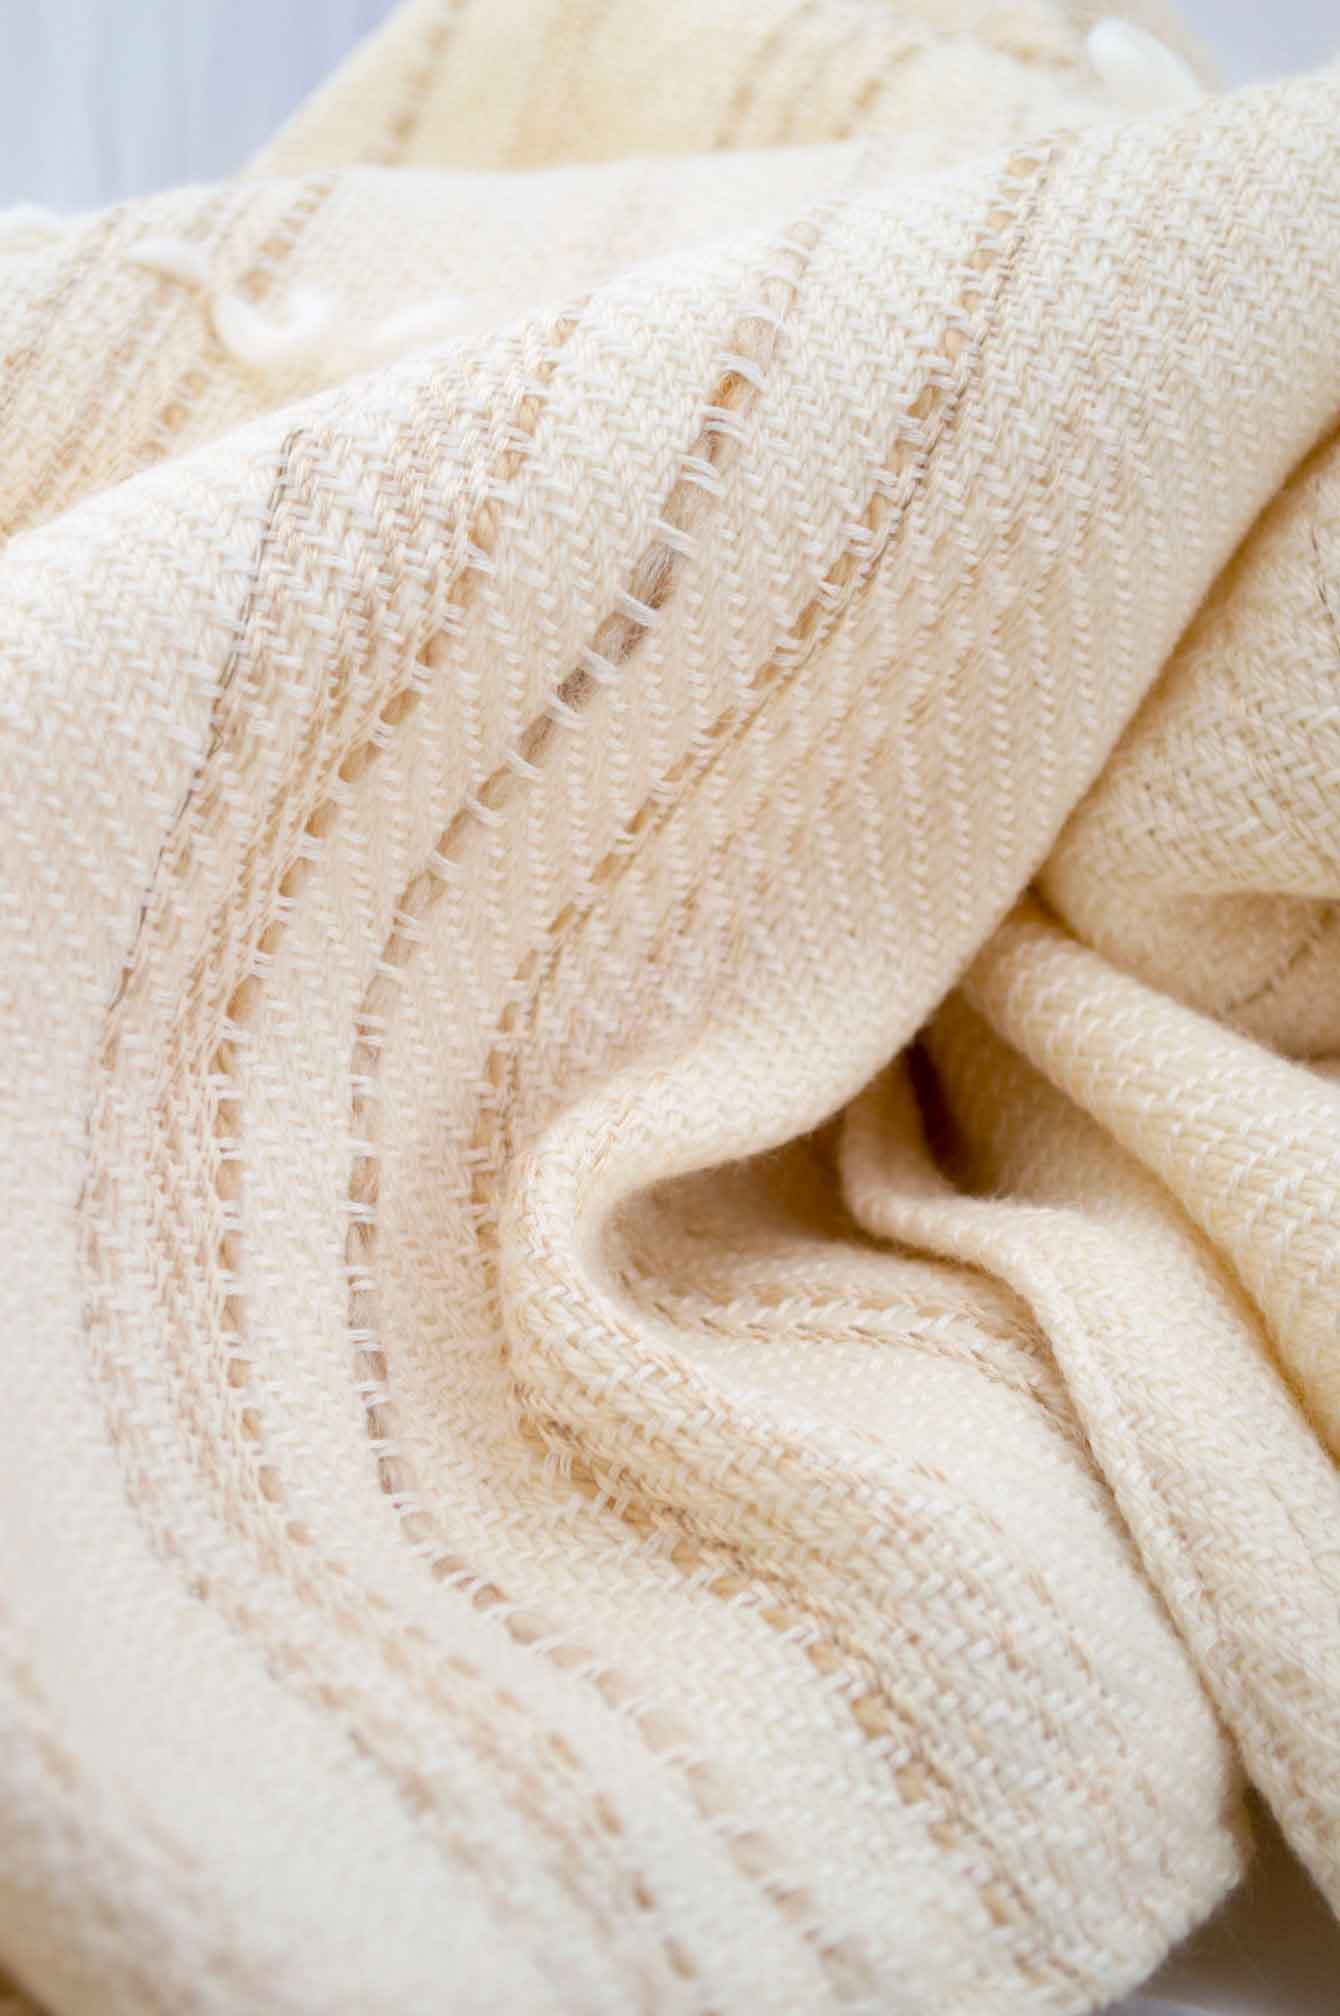 Throw blanket created with white cashmere, ecru wool plus some linen and beige cotton threads slipped into the throw blanket. White wool loop lines added after weaving the piece.  Technique: Throw blanket hand-woven in a traditional way on non-mechanical looms in the 7th arrondissement of Paris in France.  Finishing: Right edge. Double stitching. 4 pompoms 9 cm high. Two tones, beige silk and white cashmere.  Size: 140 x 170 cm.  Single piece / 1 copy only.